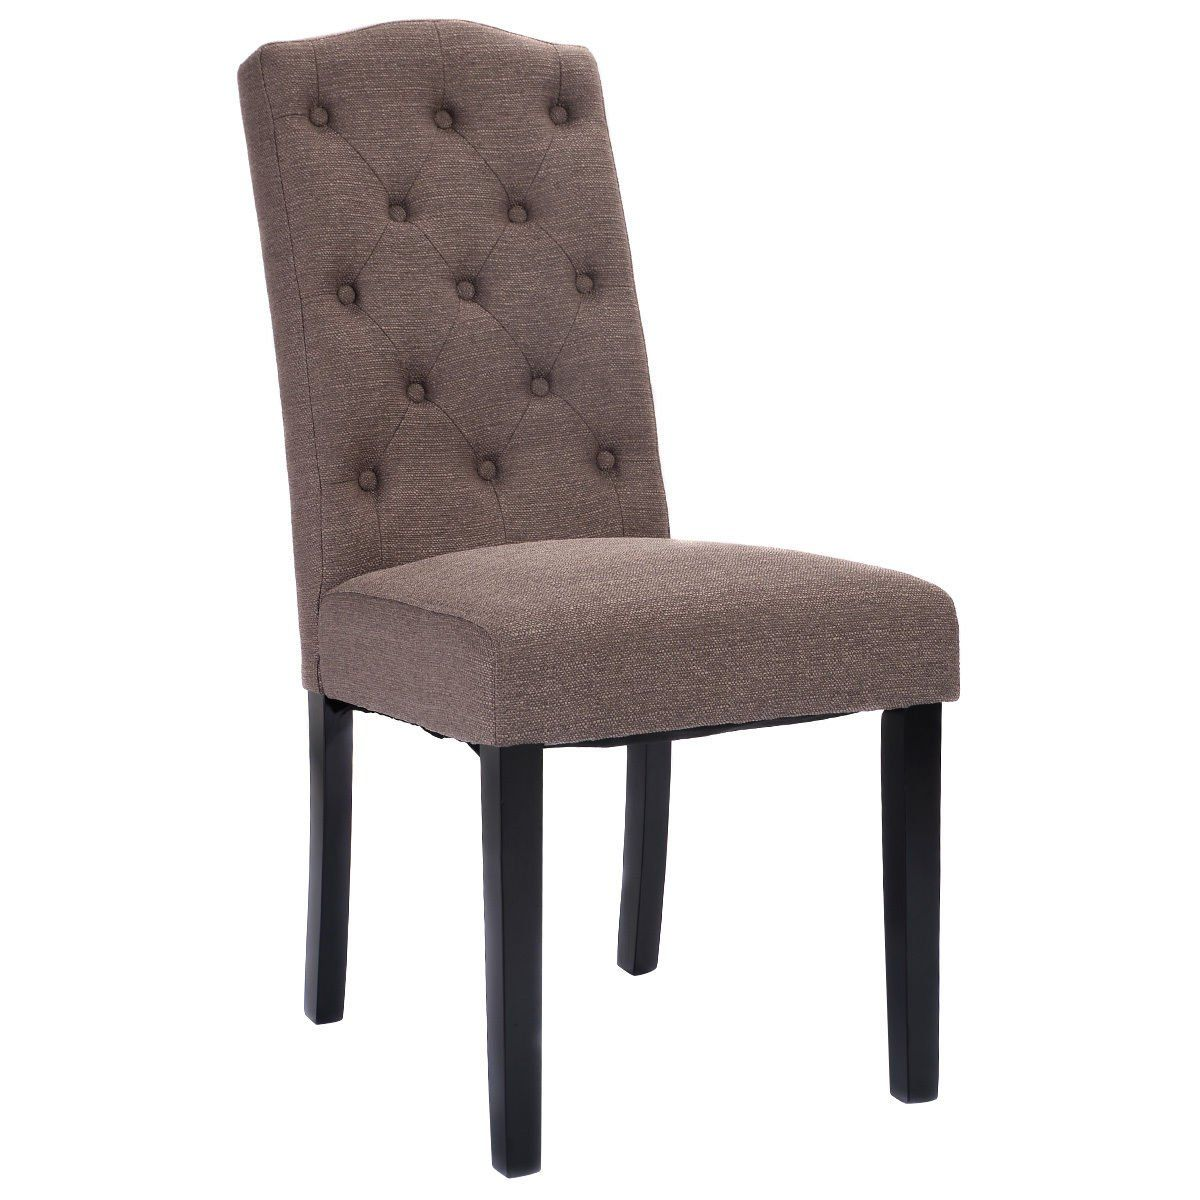 Giantex set of 2 fabric wood accent dining chair tufted